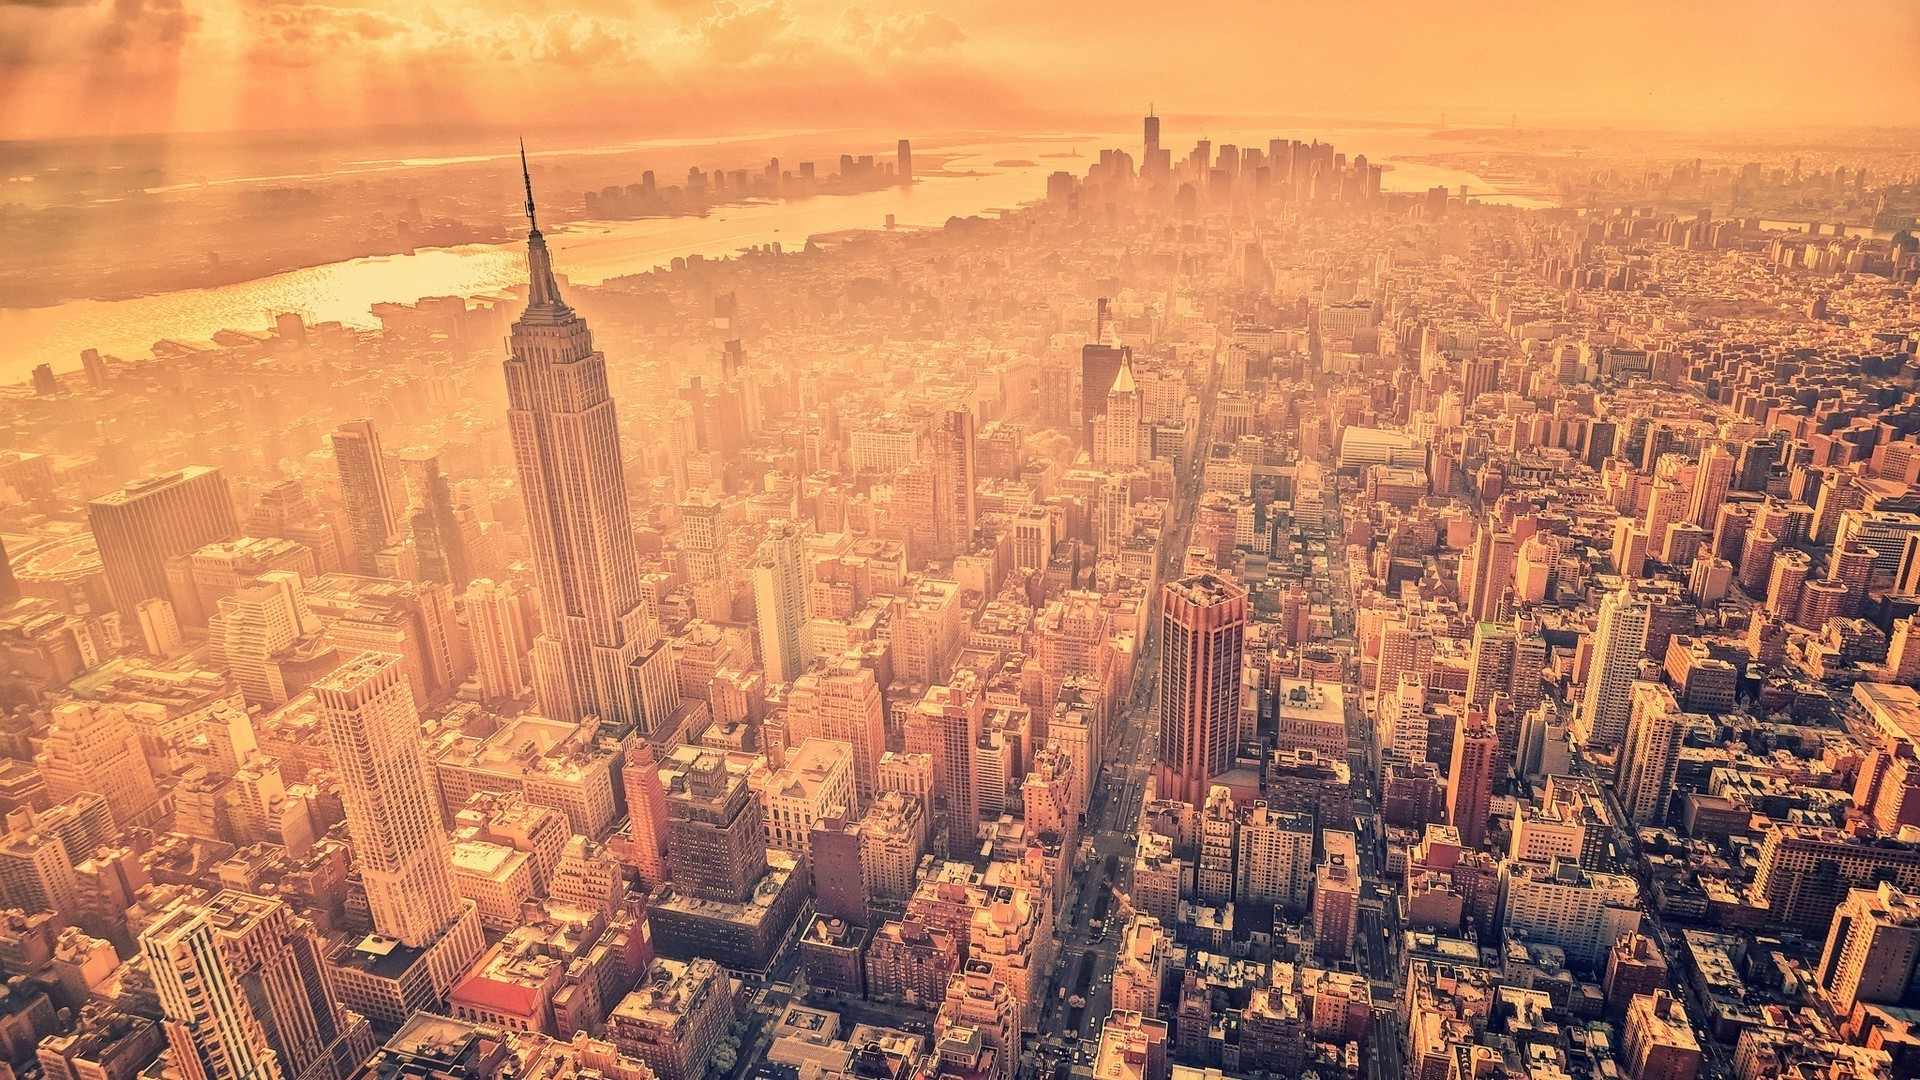 photography photo manipulation new york city cityscape empire state  building manhattan birds eye view usa Wallpapers HD / Desktop and Mobile  Backgrounds